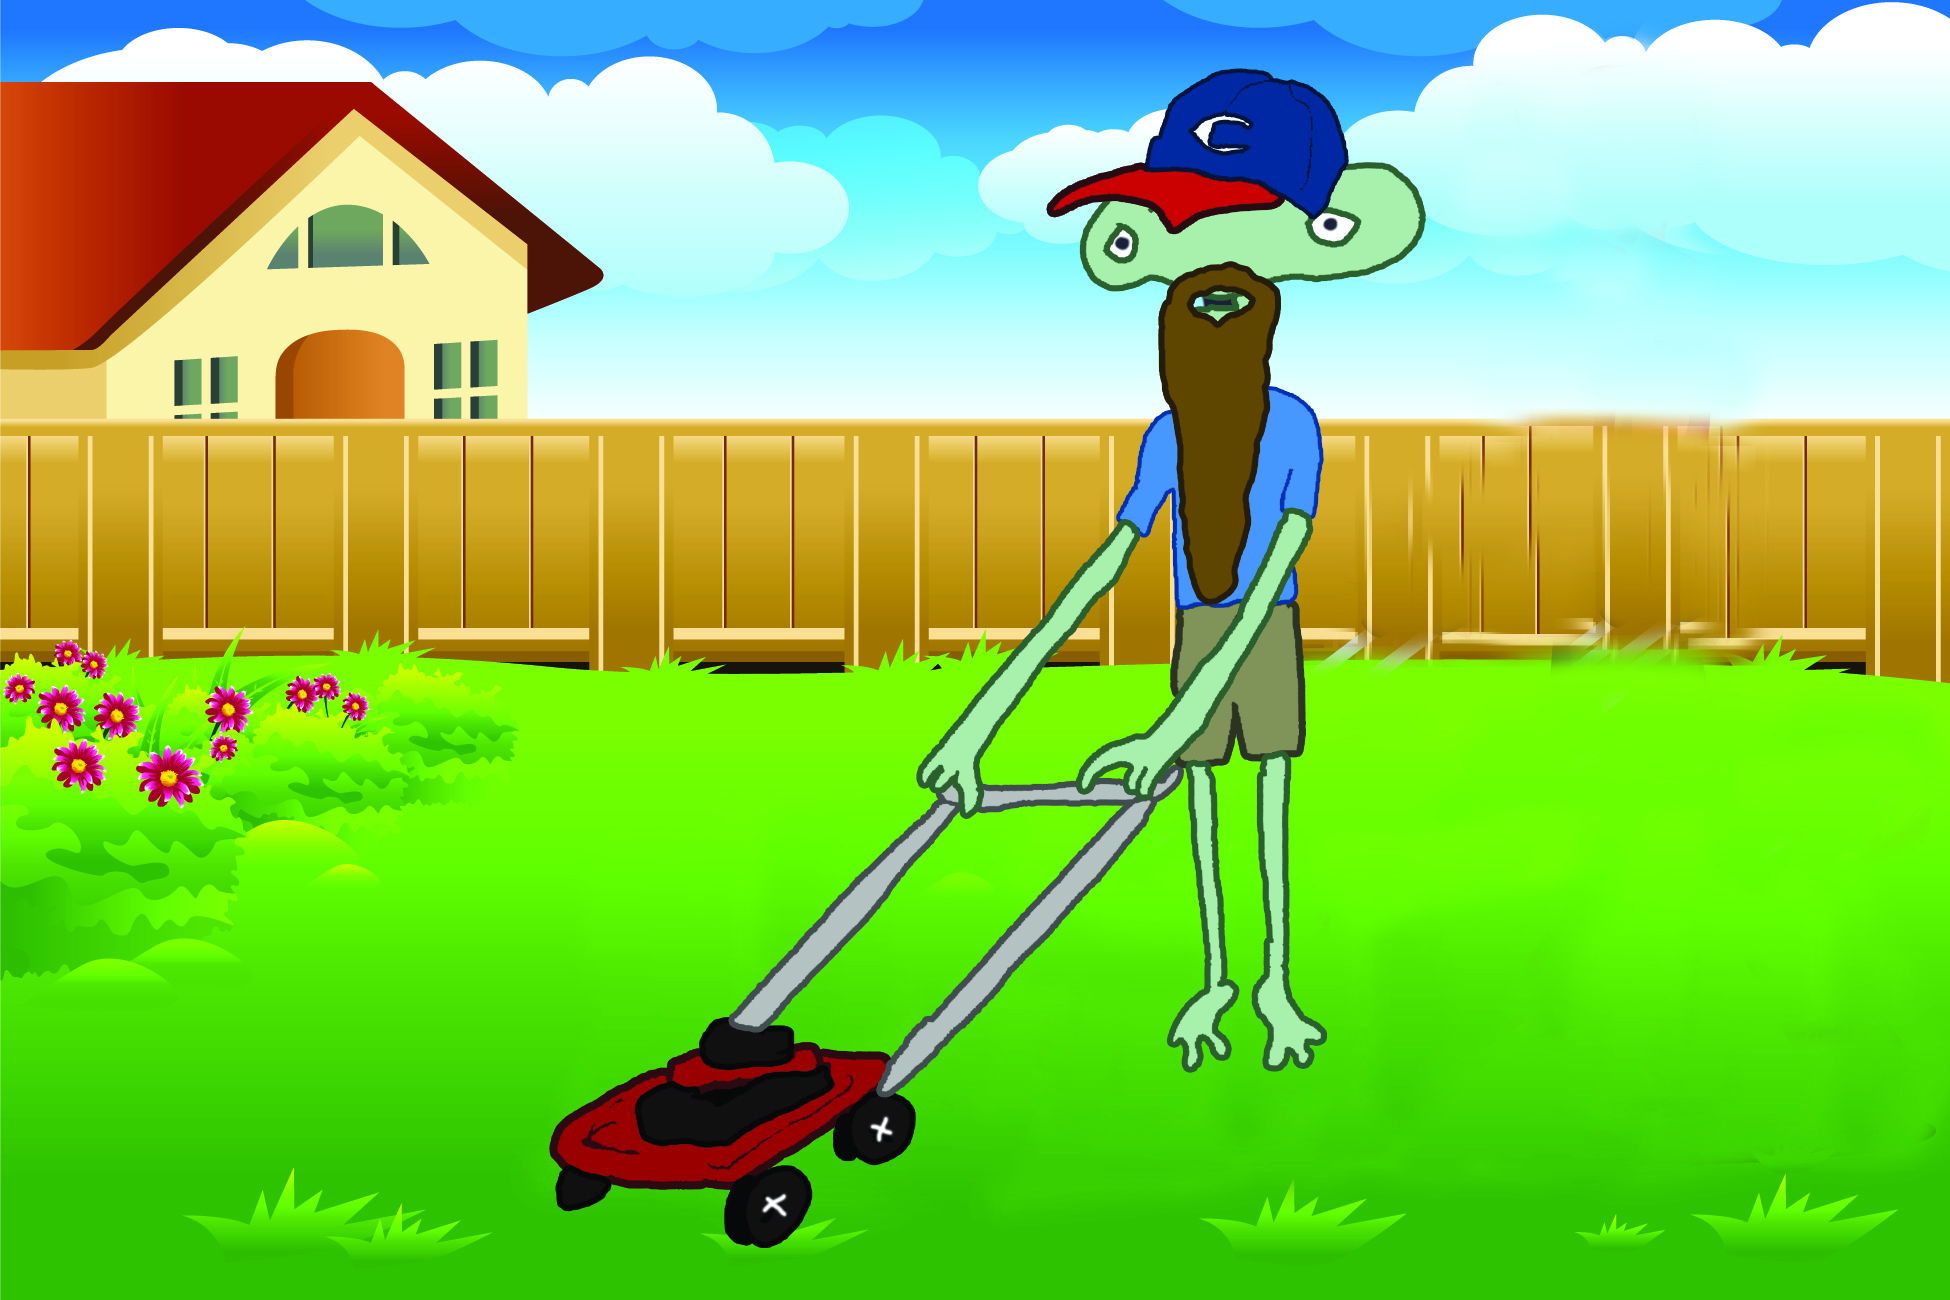 I Think Aliens Provide Lawn Care Service in My Neighborhood - Coma ...